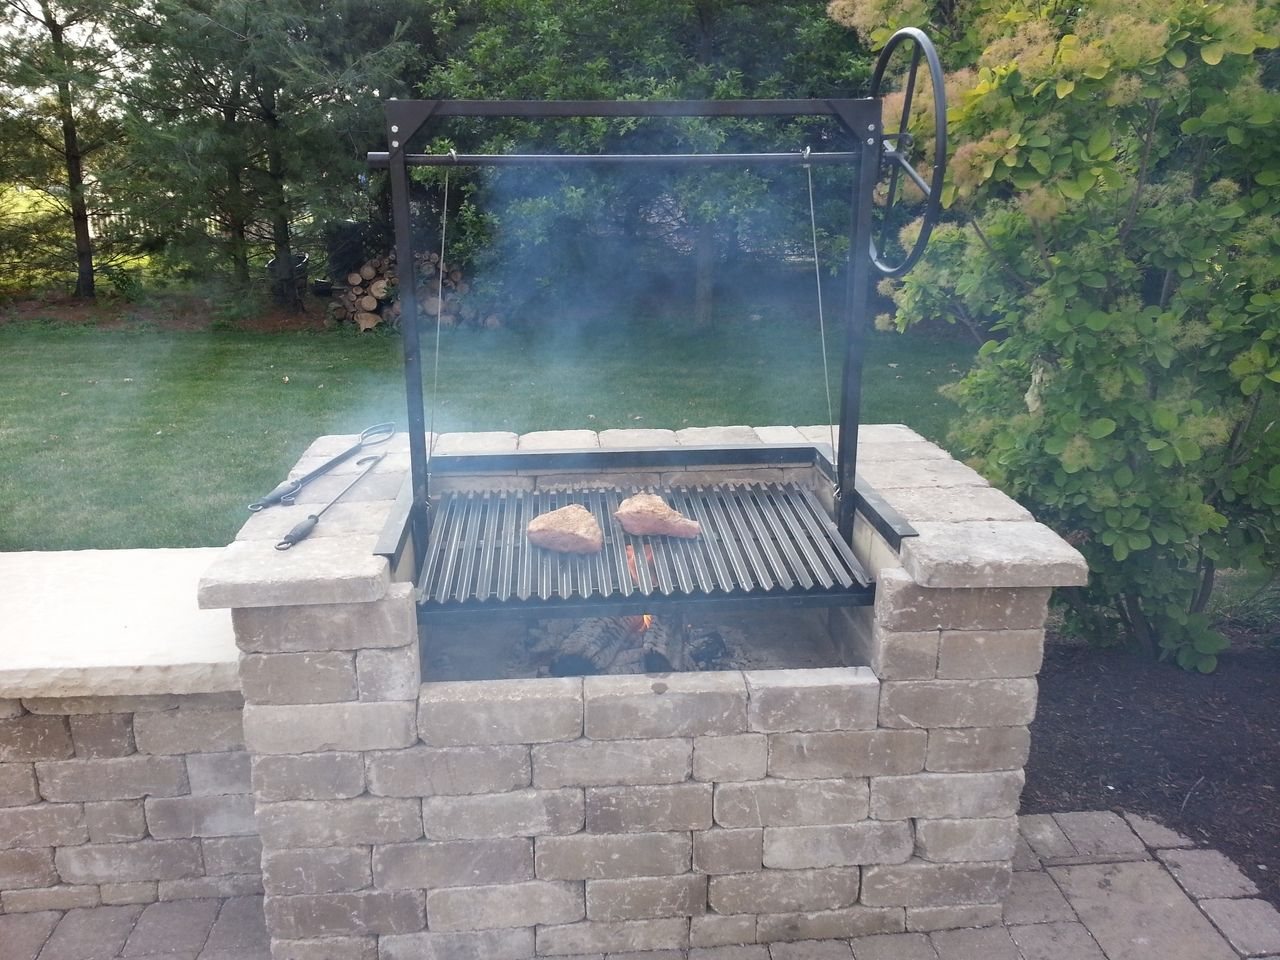 The Plum | Argentine Grill Kit for Wood or Charcoal Grilling with no ...